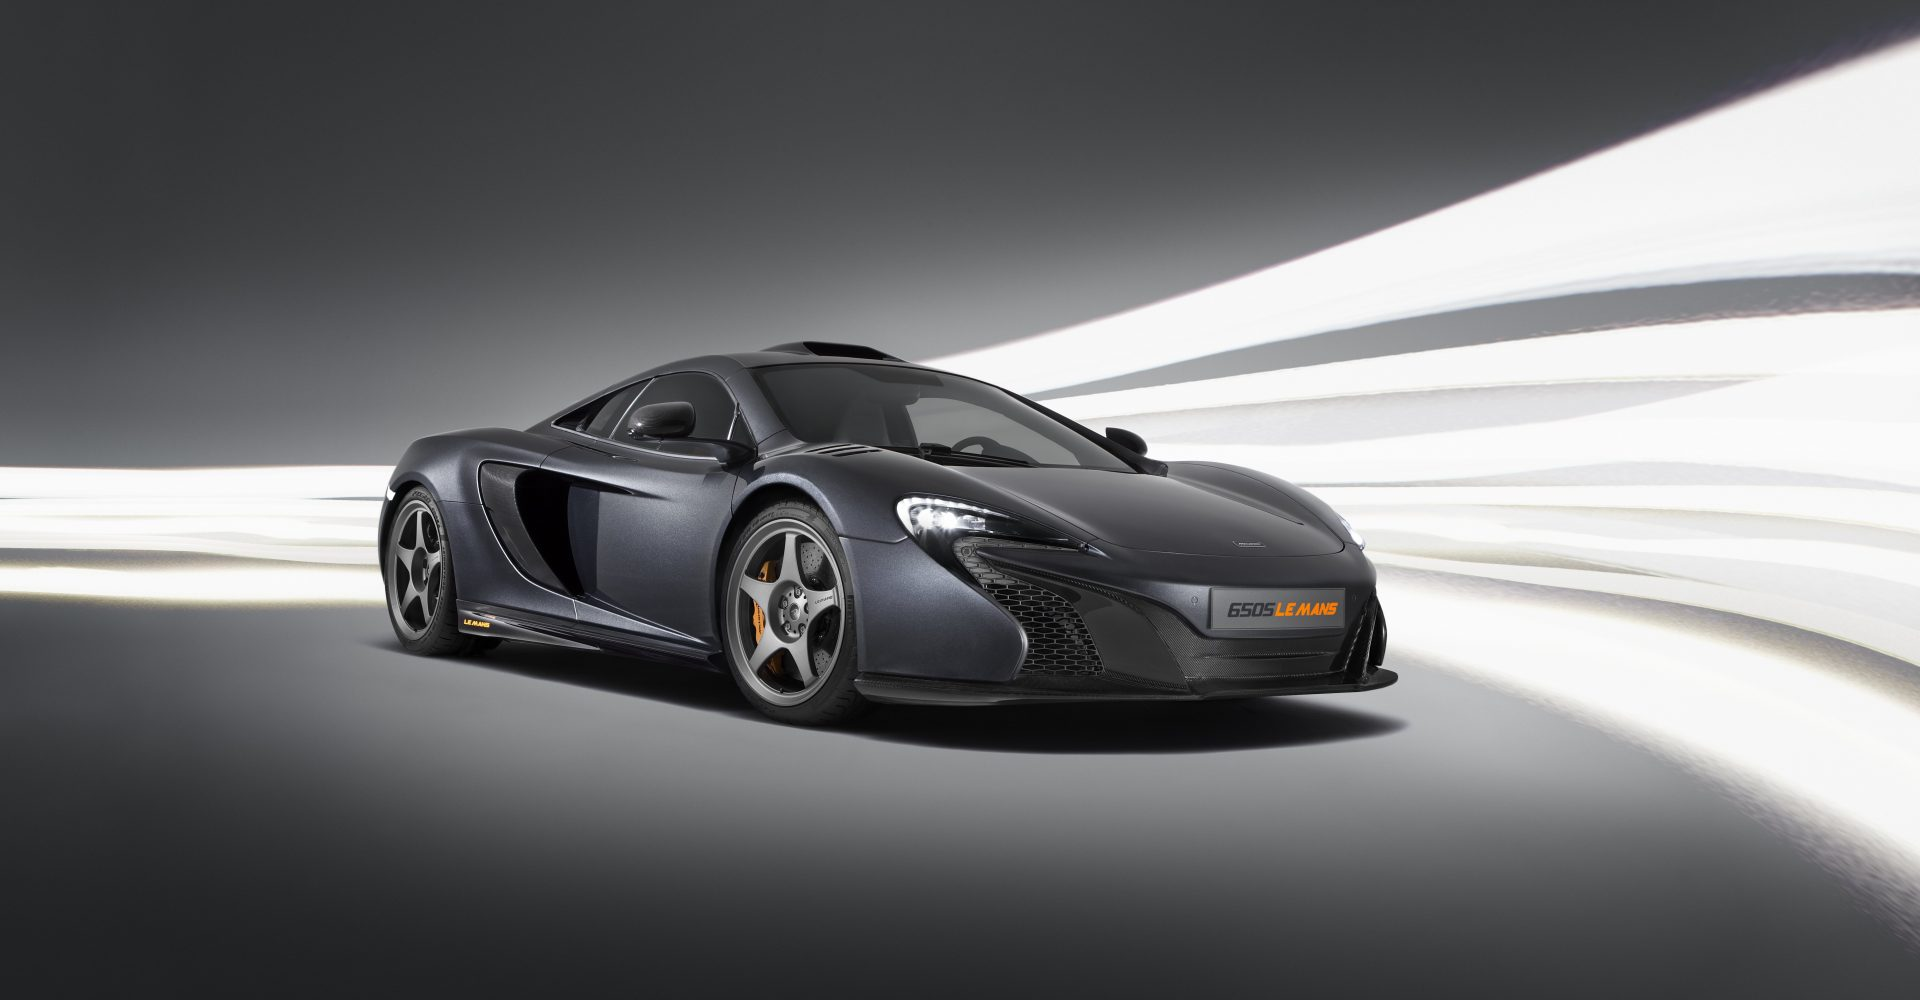 Meet the super rare special edition McLarens